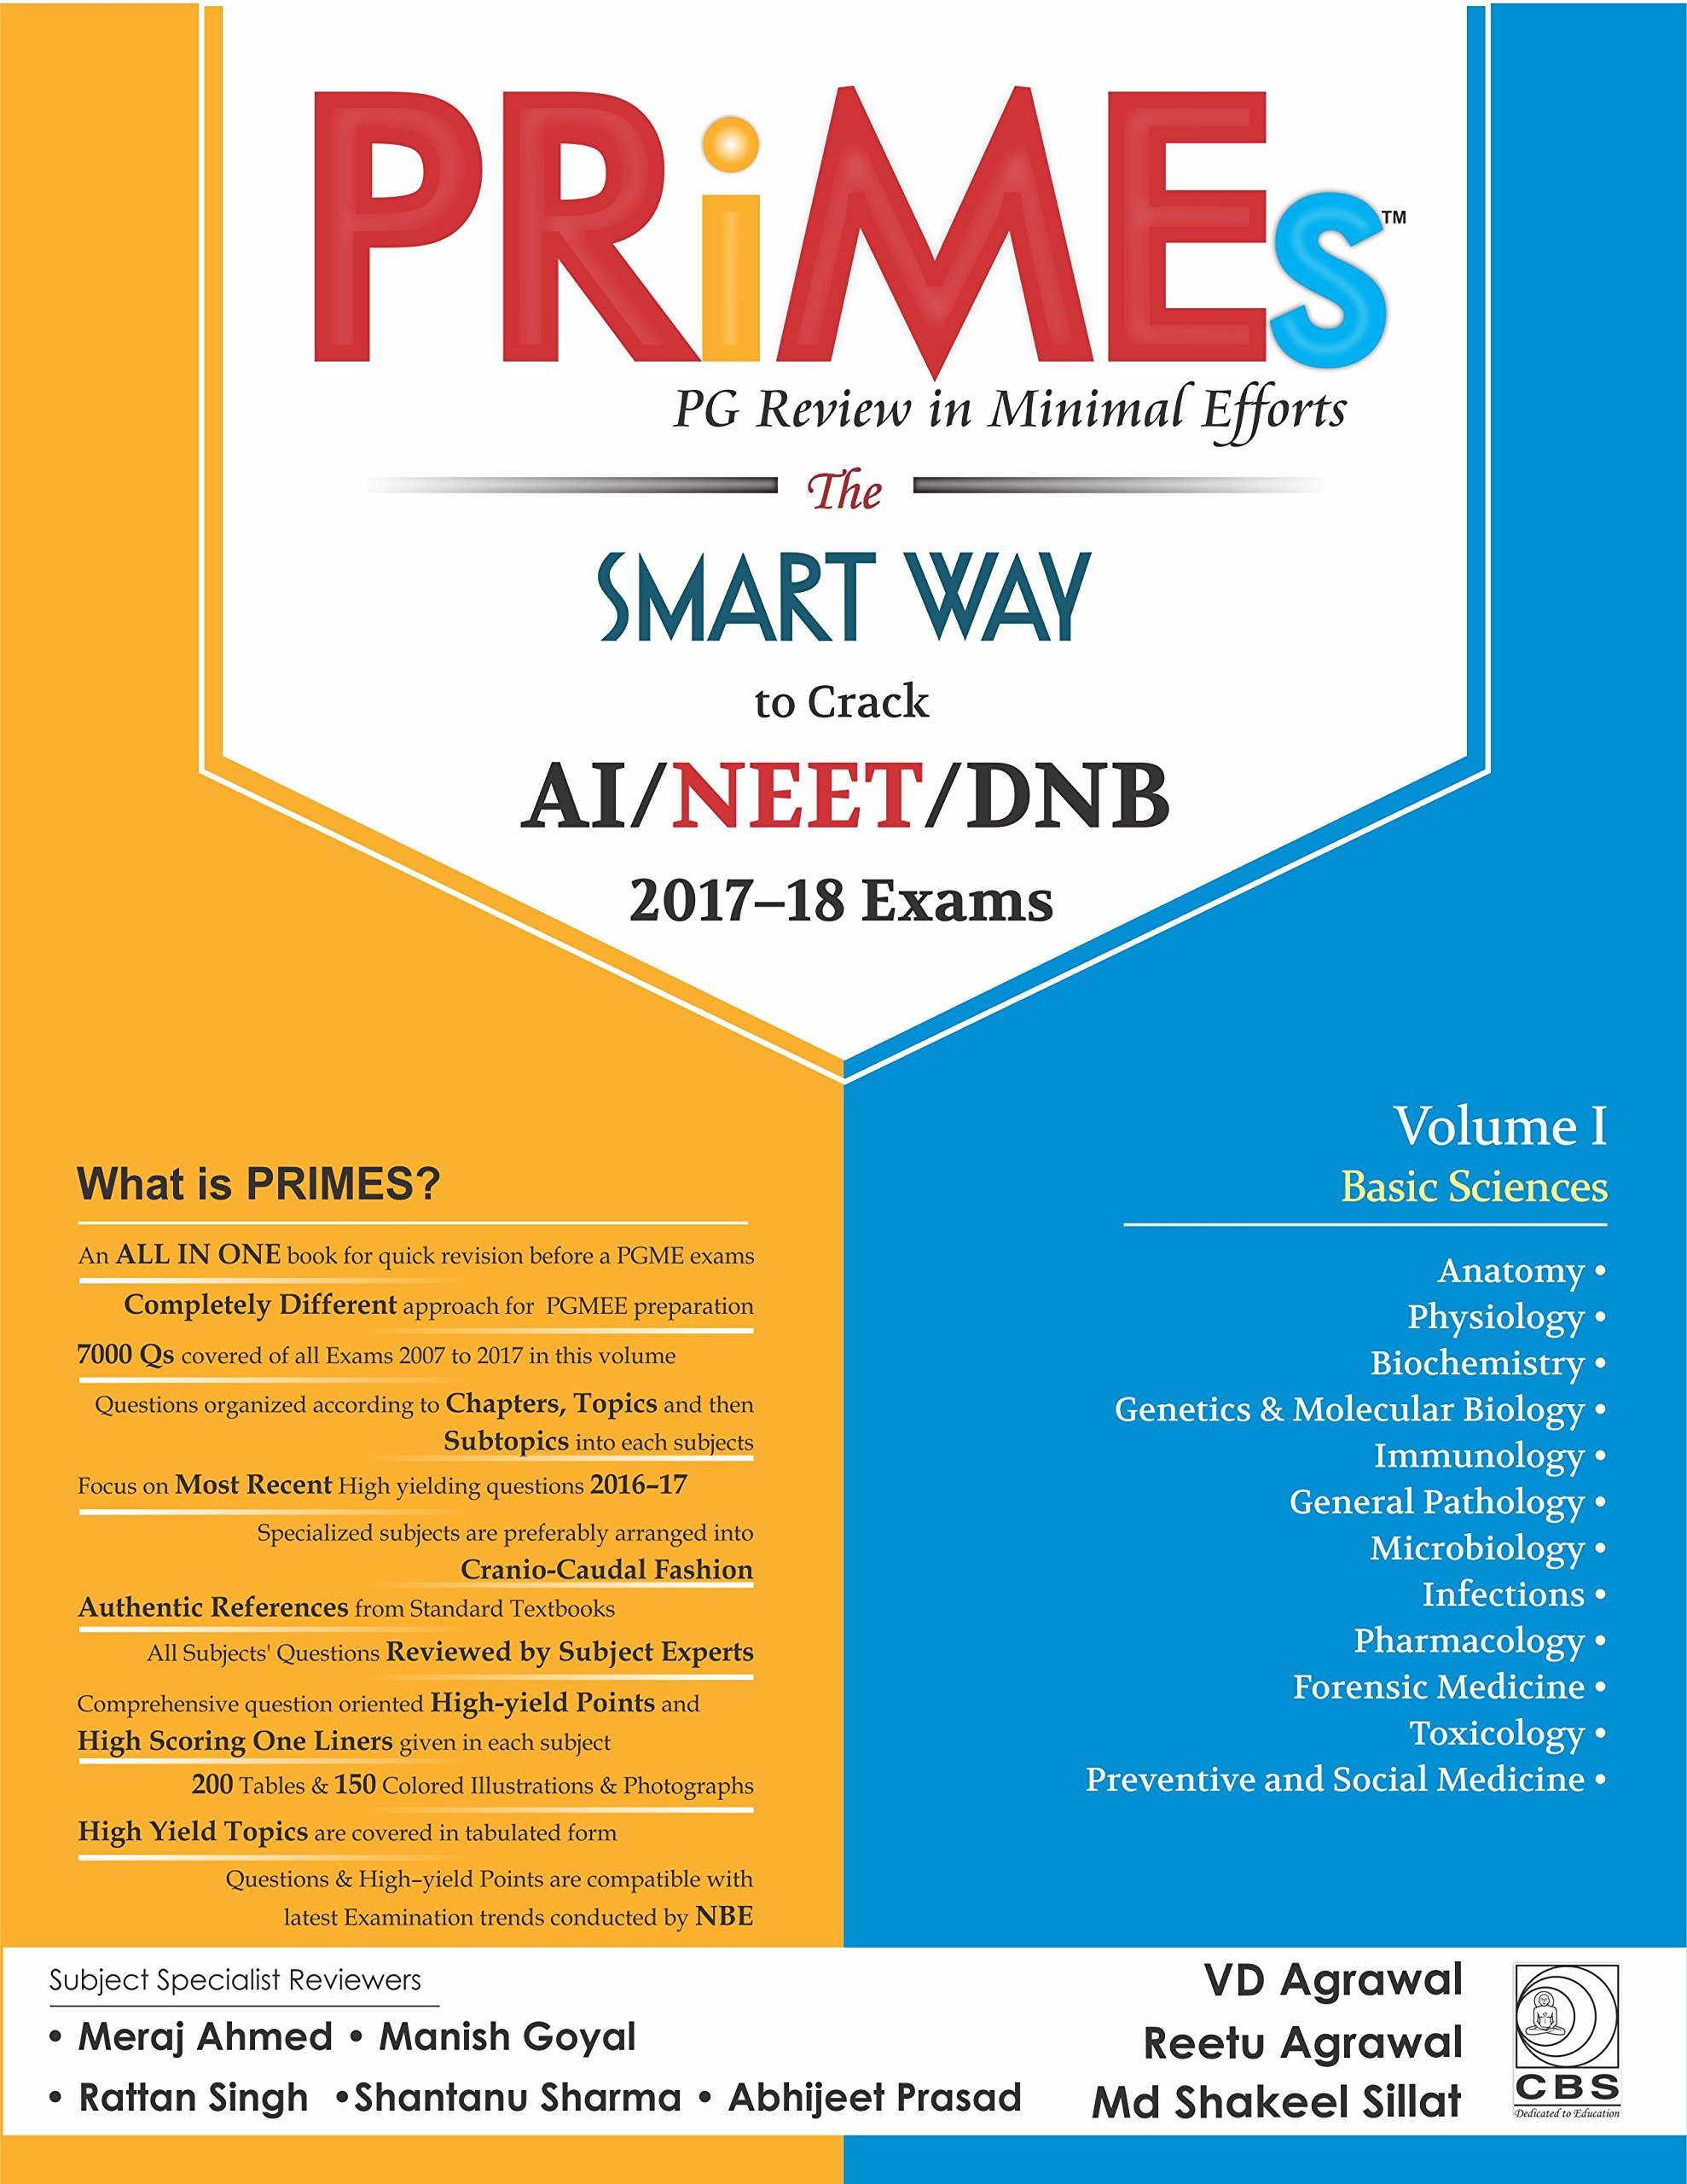 Amazon in: Buy PRiMEs - PG Review in Minimal Efforts (Volume